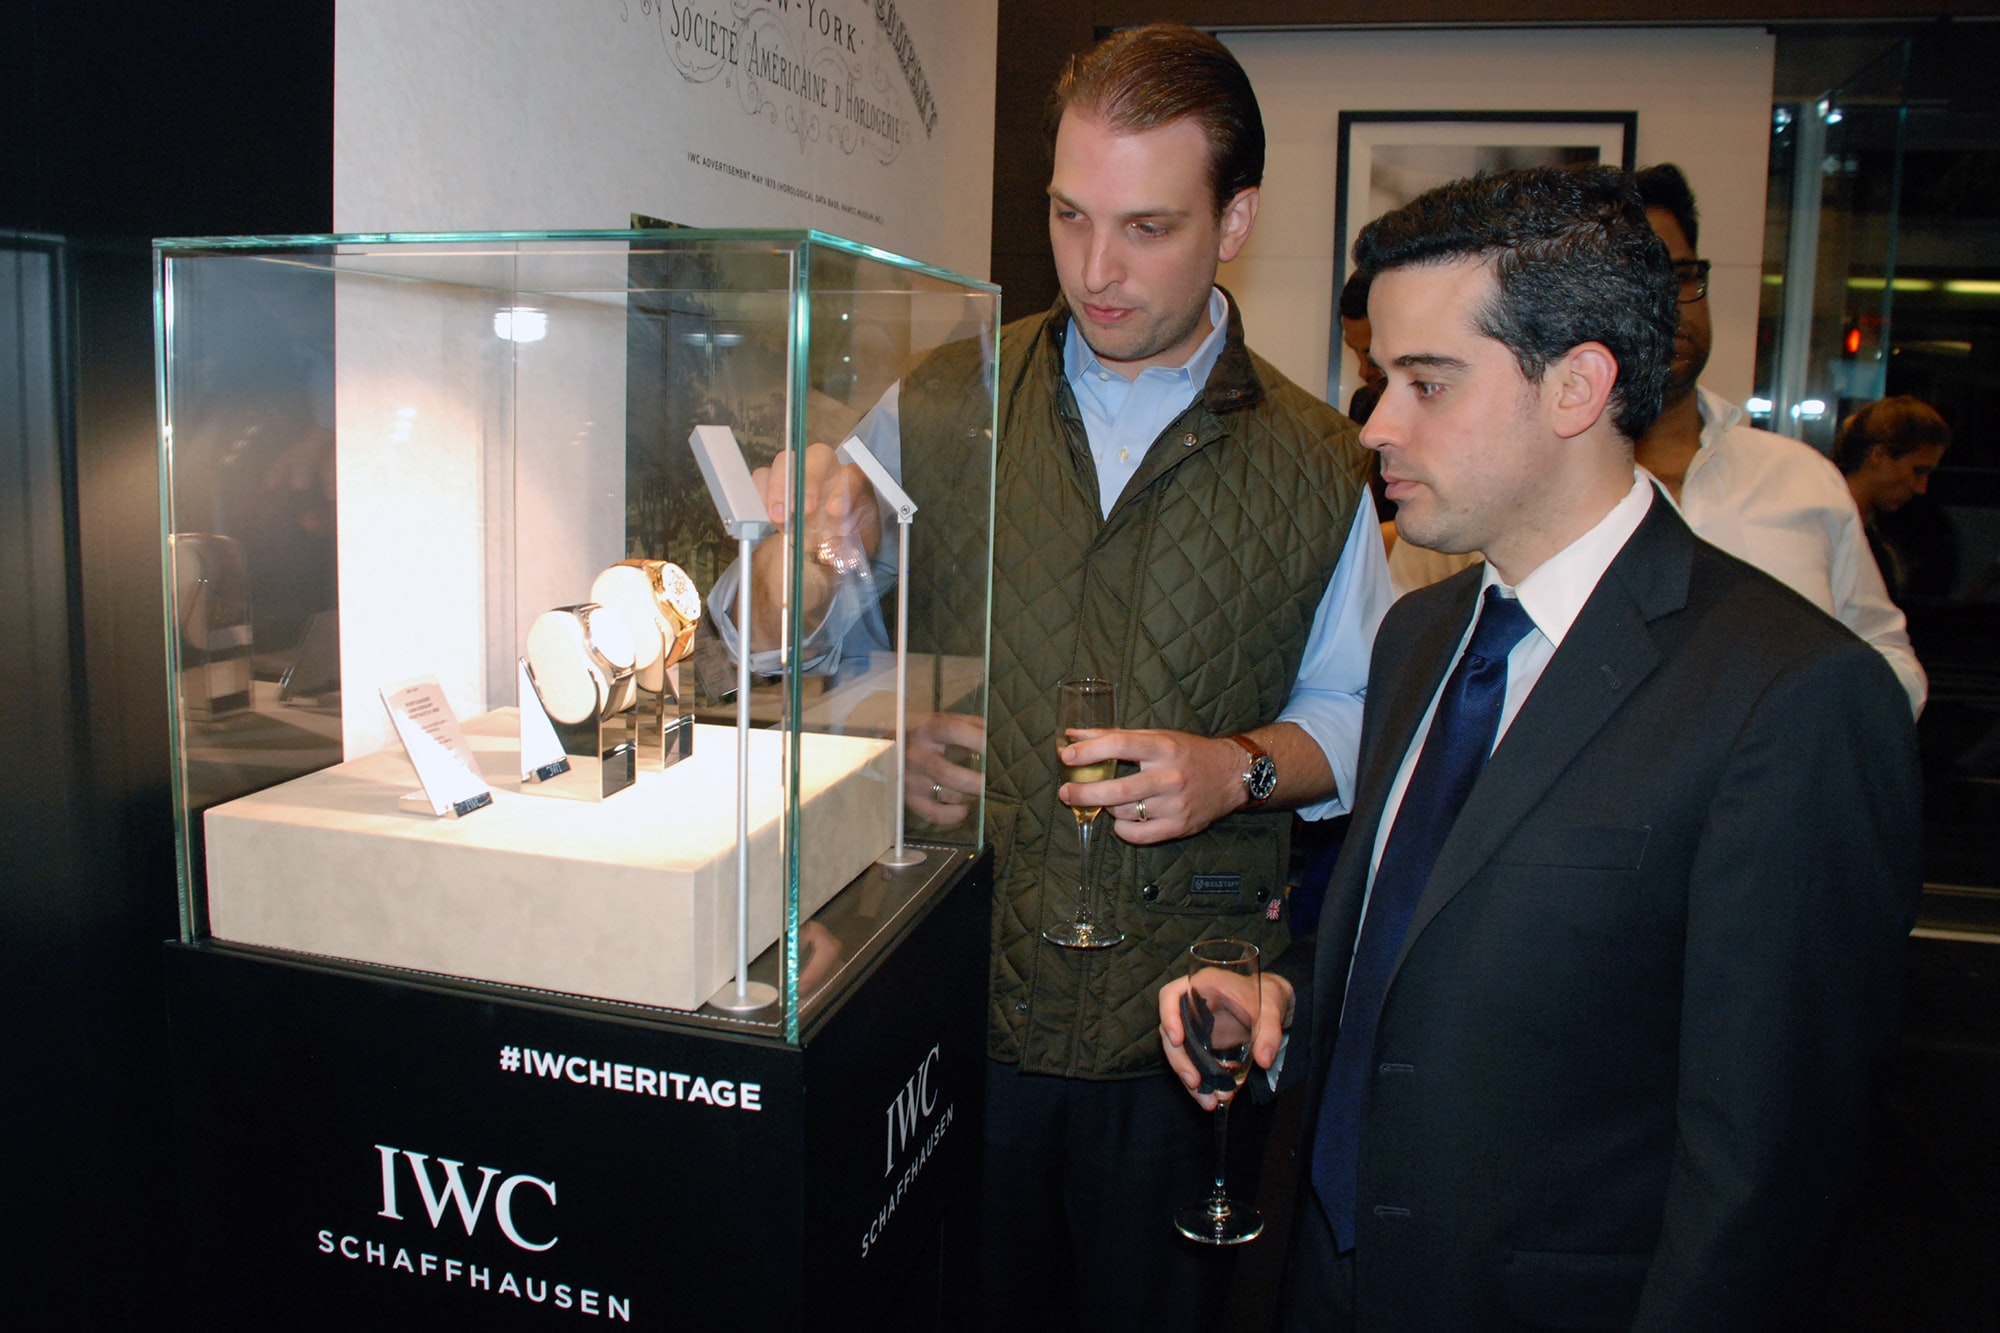 Photo Report: HODINKEE And IWC Celebrate The Portugieser Hand-Wound Tourbillion Edition 'D.H. Craig USA' In New York Photo Report: HODINKEE And IWC Celebrate The Portugieser Hand-Wound Tourbillion Edition 'D.H. Craig USA' In New York 0113 copy